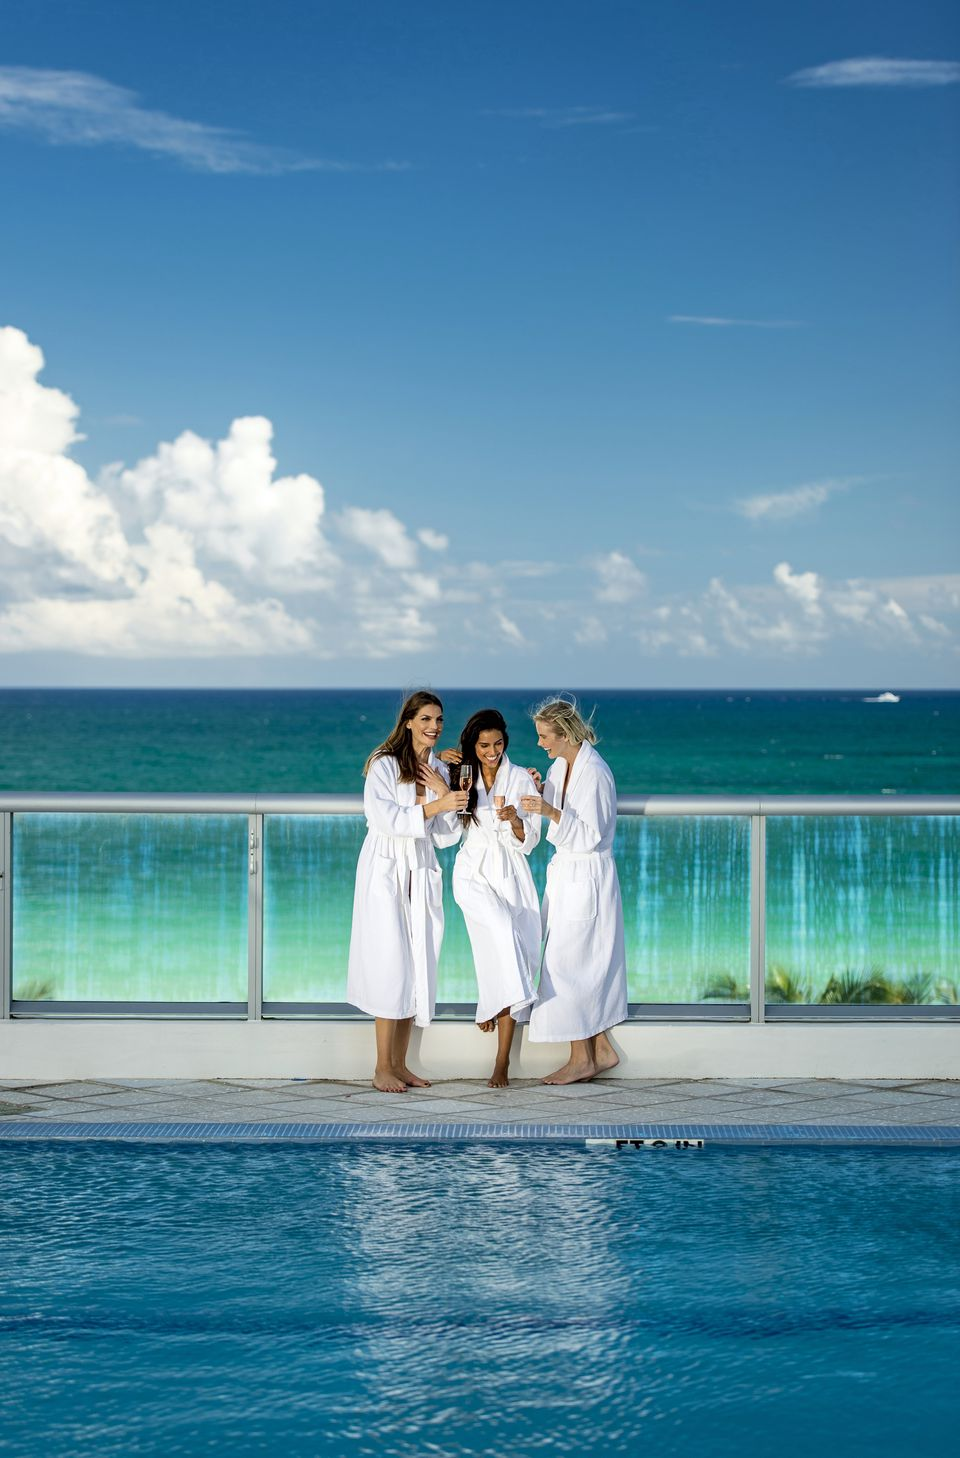 The Carillon Miami Wellness Resort draws bachelorette groups for kombucha facials and other treatments.